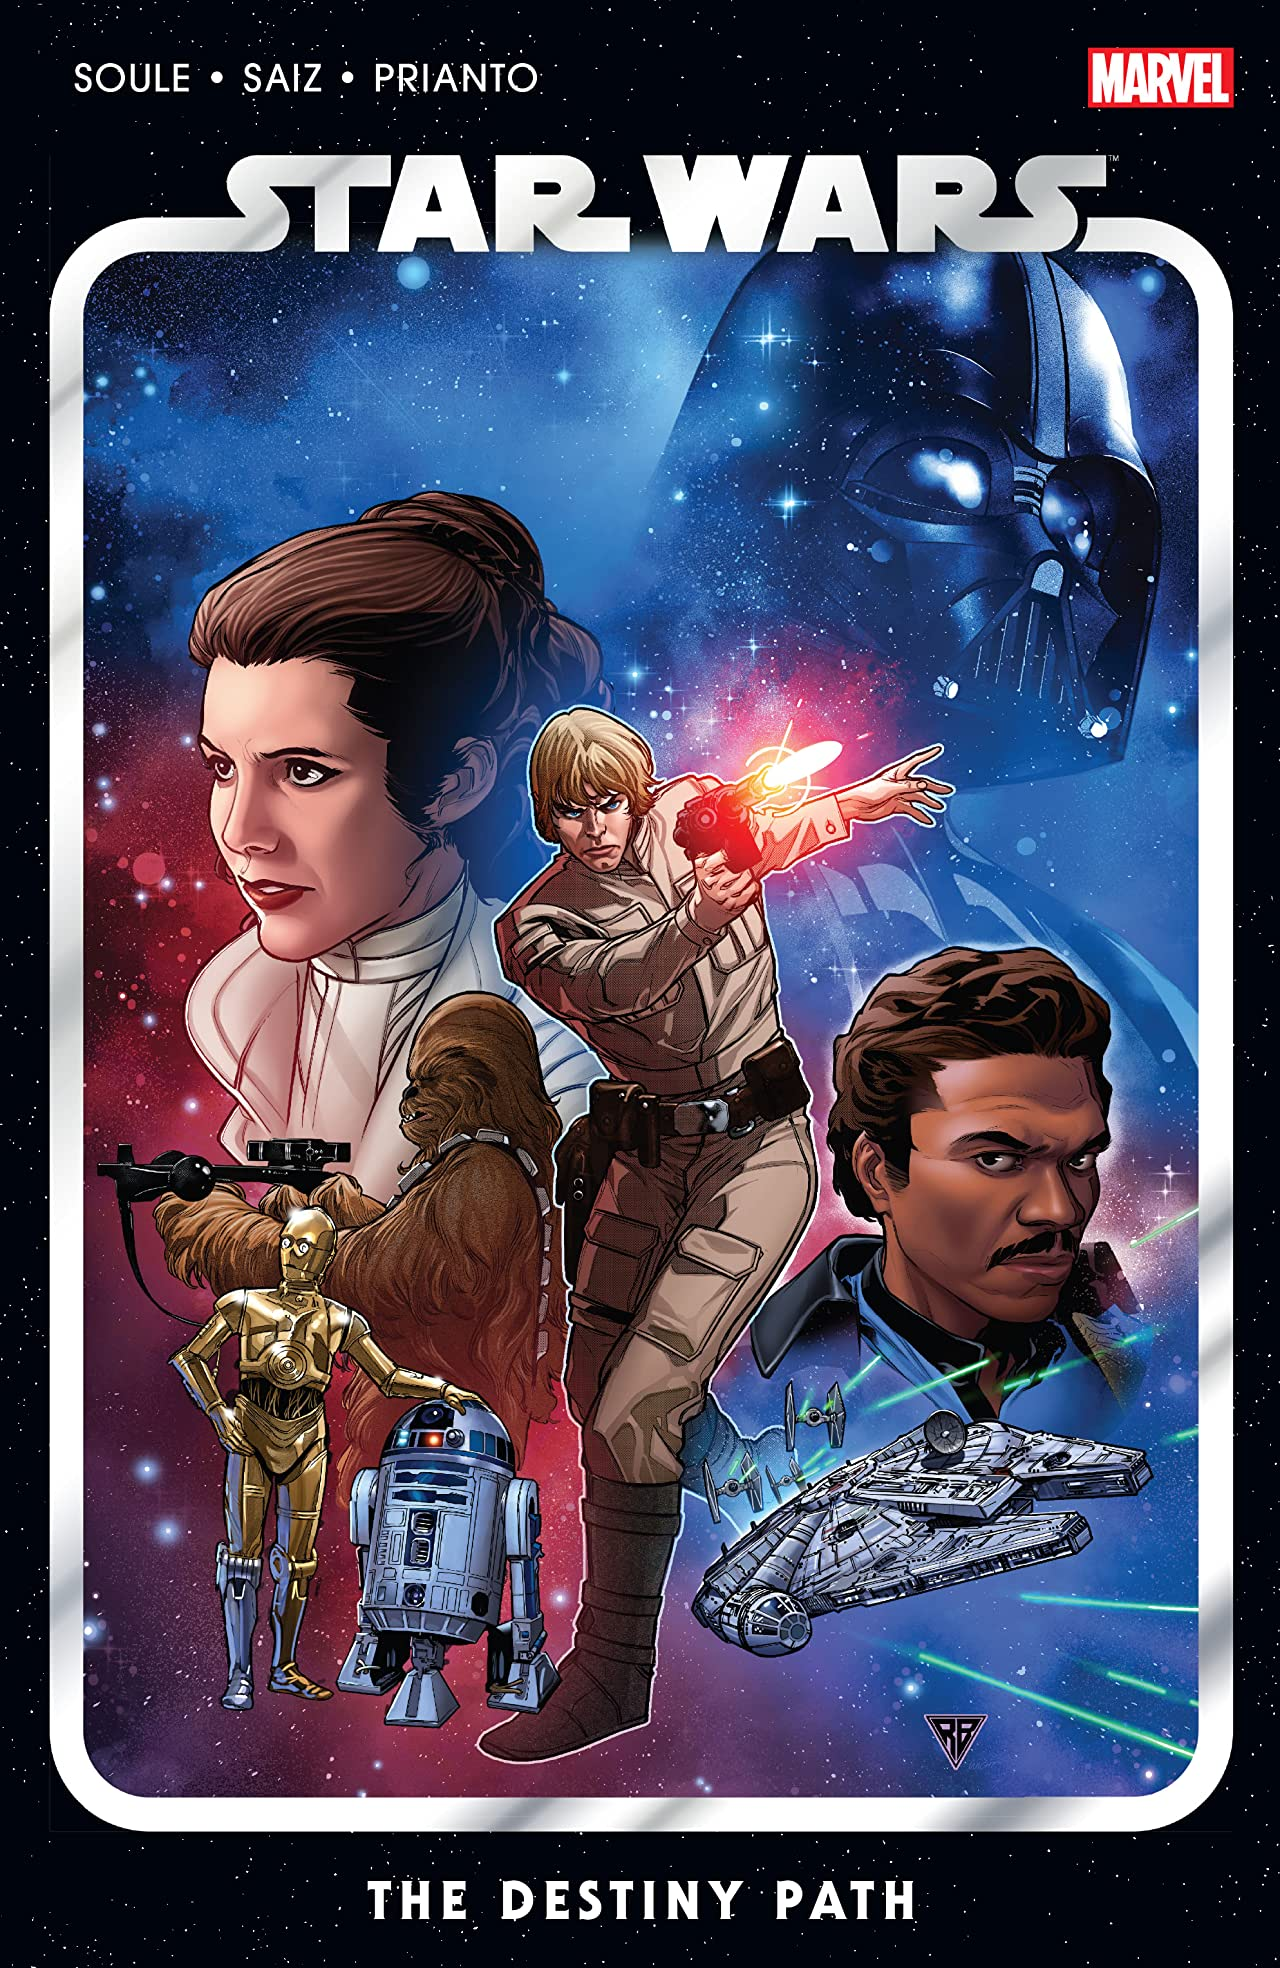 STAR WARS VOL. 1: THE DESTINY PATH TPB (Trade Paperback)